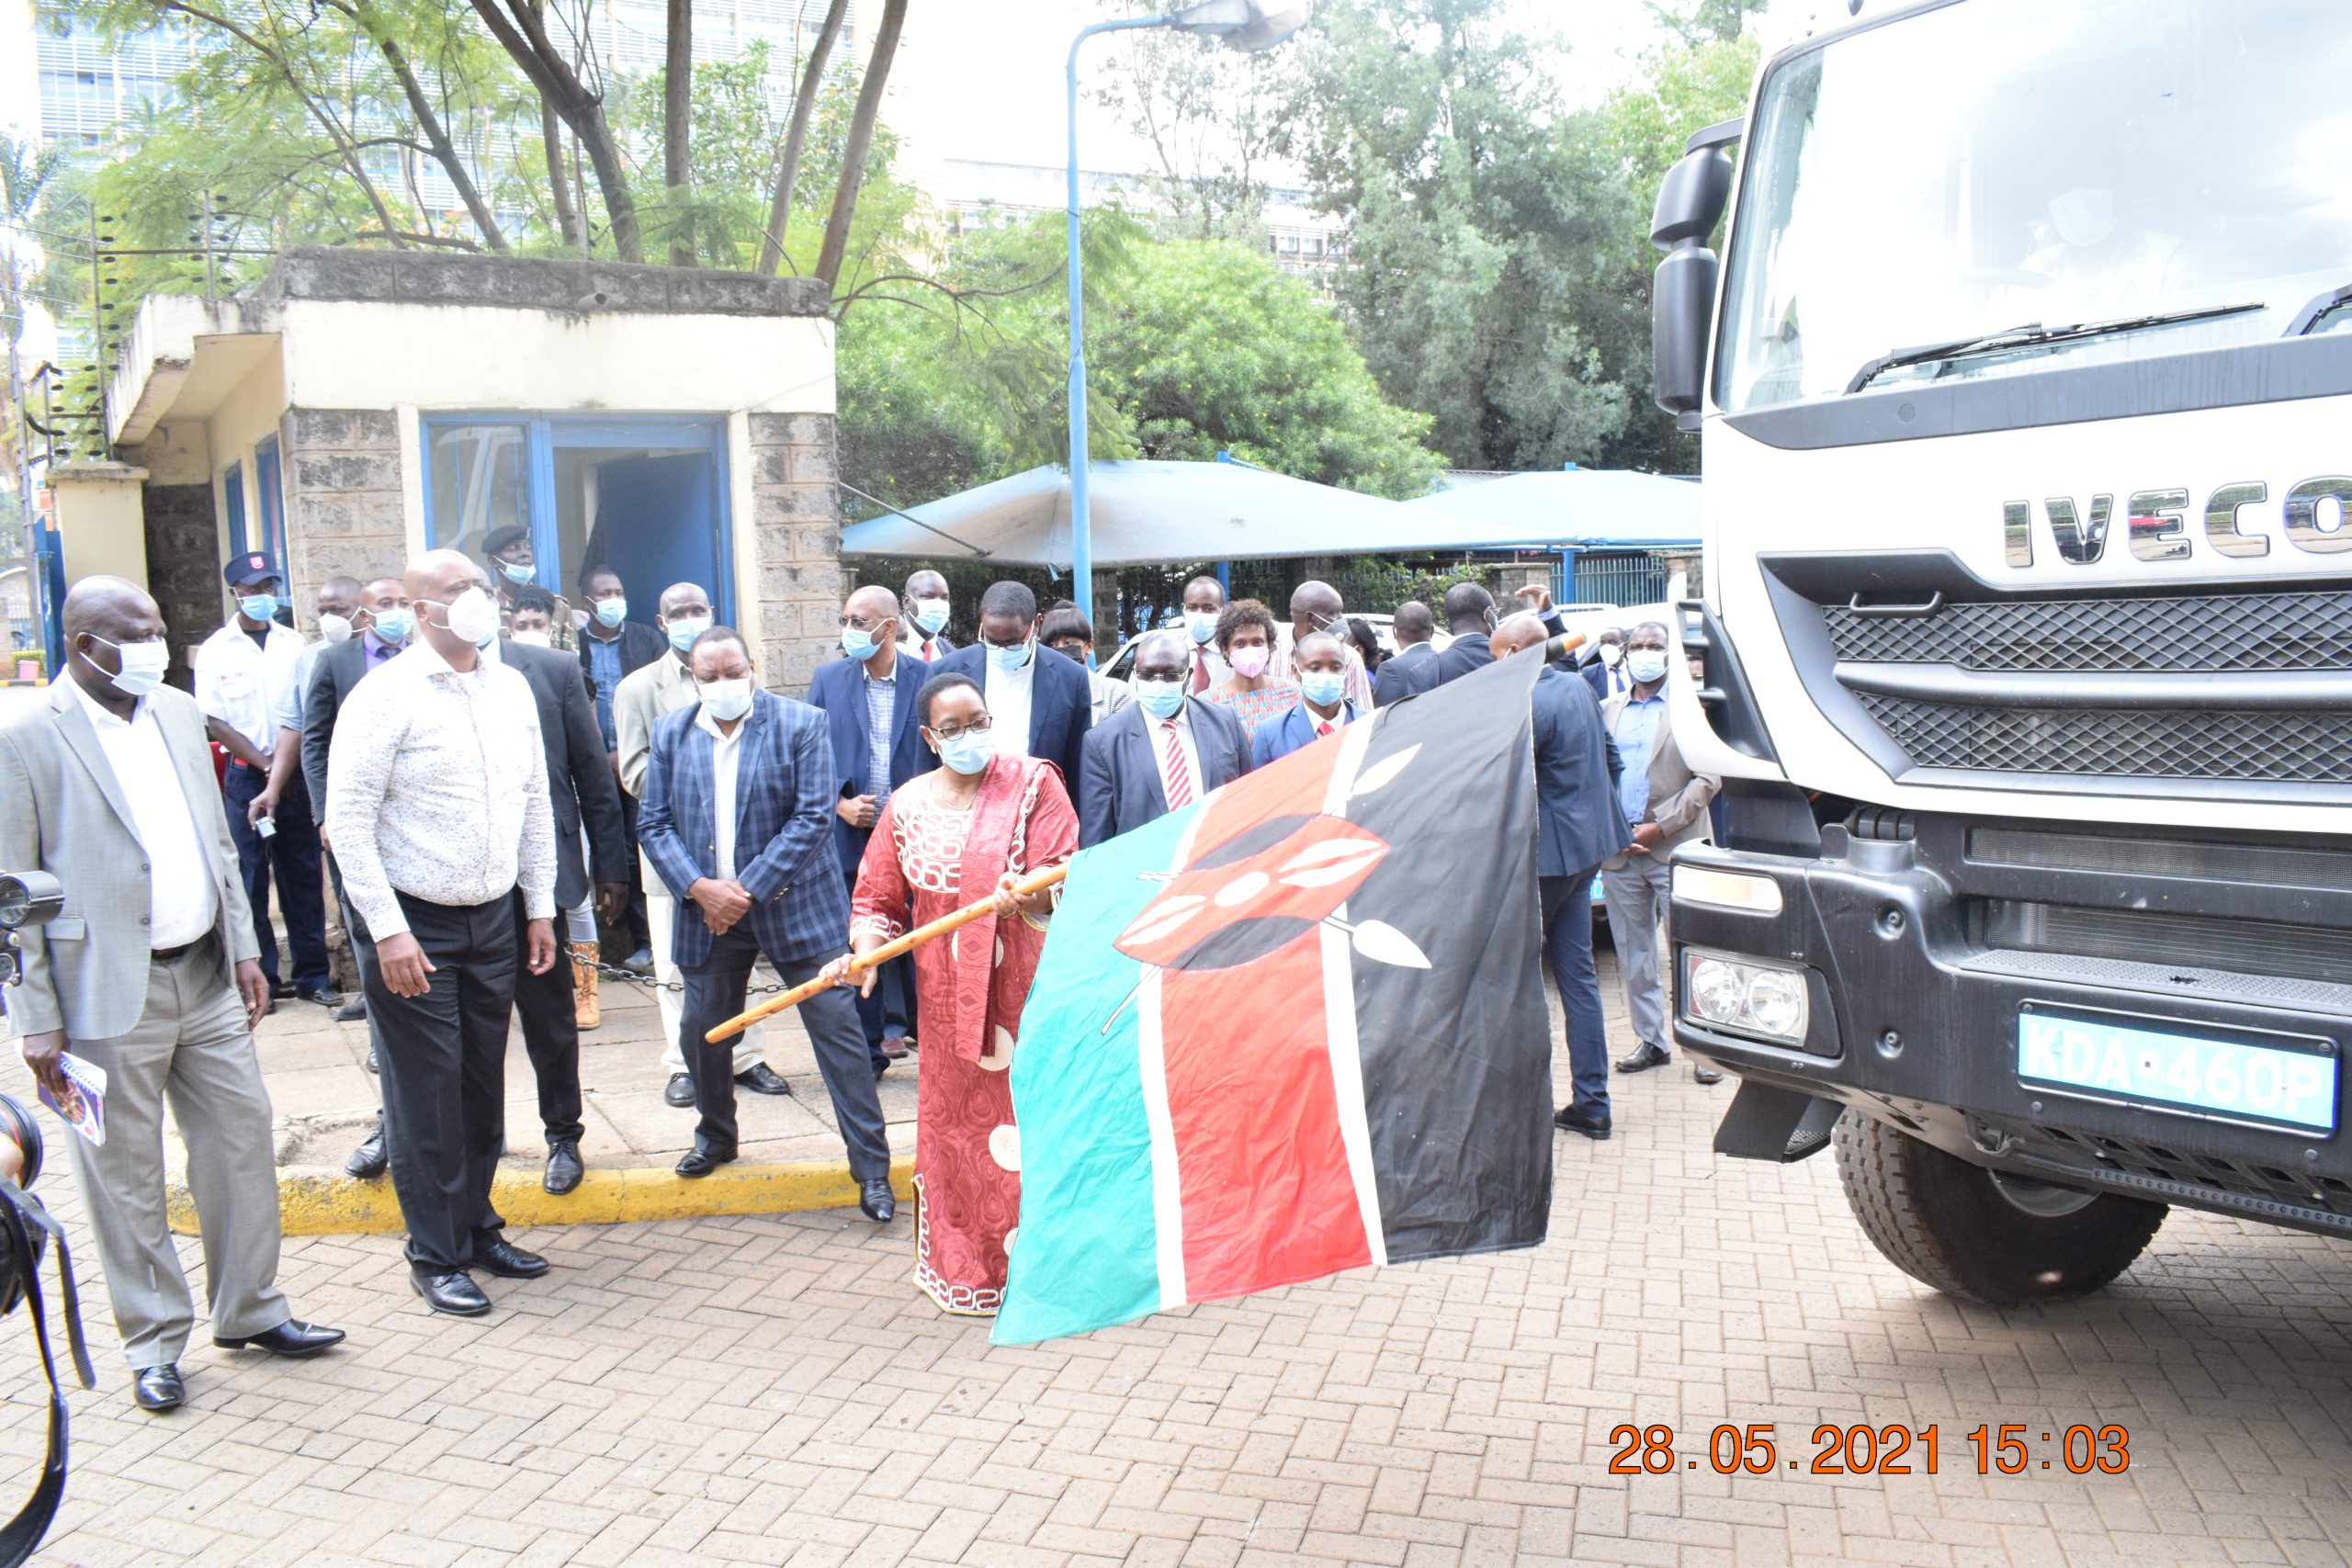 Water and Sanitation and Irrigation Cabinet Secretary , Sicily Kariuki , flags off  sewer flushing units and operation vehicles for the  Company at Maji House. She is flanked by Water Principal Secretary Joseph Irungu ( 3rd Left) and Nairobi Metropolitan Services (NMS)  Director General Major General Mohammed Badi (2nd Left) and other top state  officials .  Three flushing units and  five operational  vehicles were handed over to the  Company  at the event.